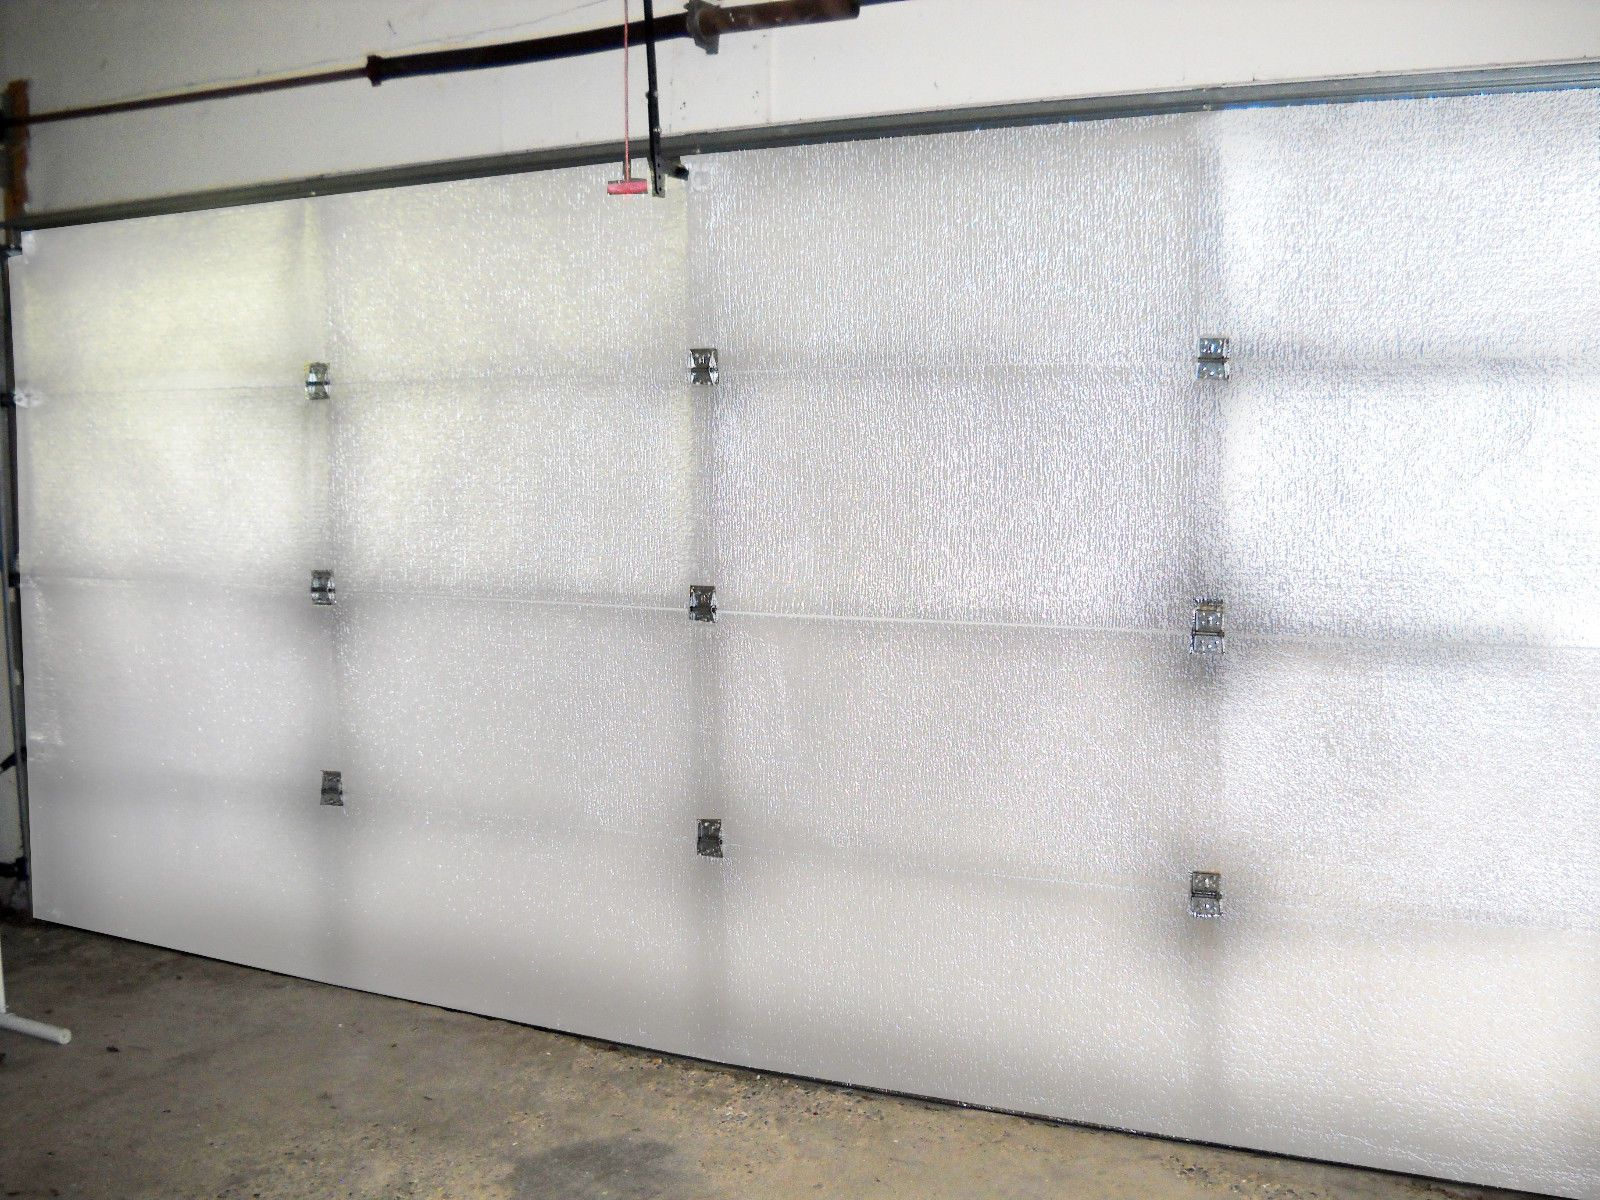 Nasa Tech White Reflective Foam Core 1 Car Garage Door Insulation Kit 9x7 9x8 Ebay Garage Door Insulation Kit Garage Door Design Garage Door Insulation